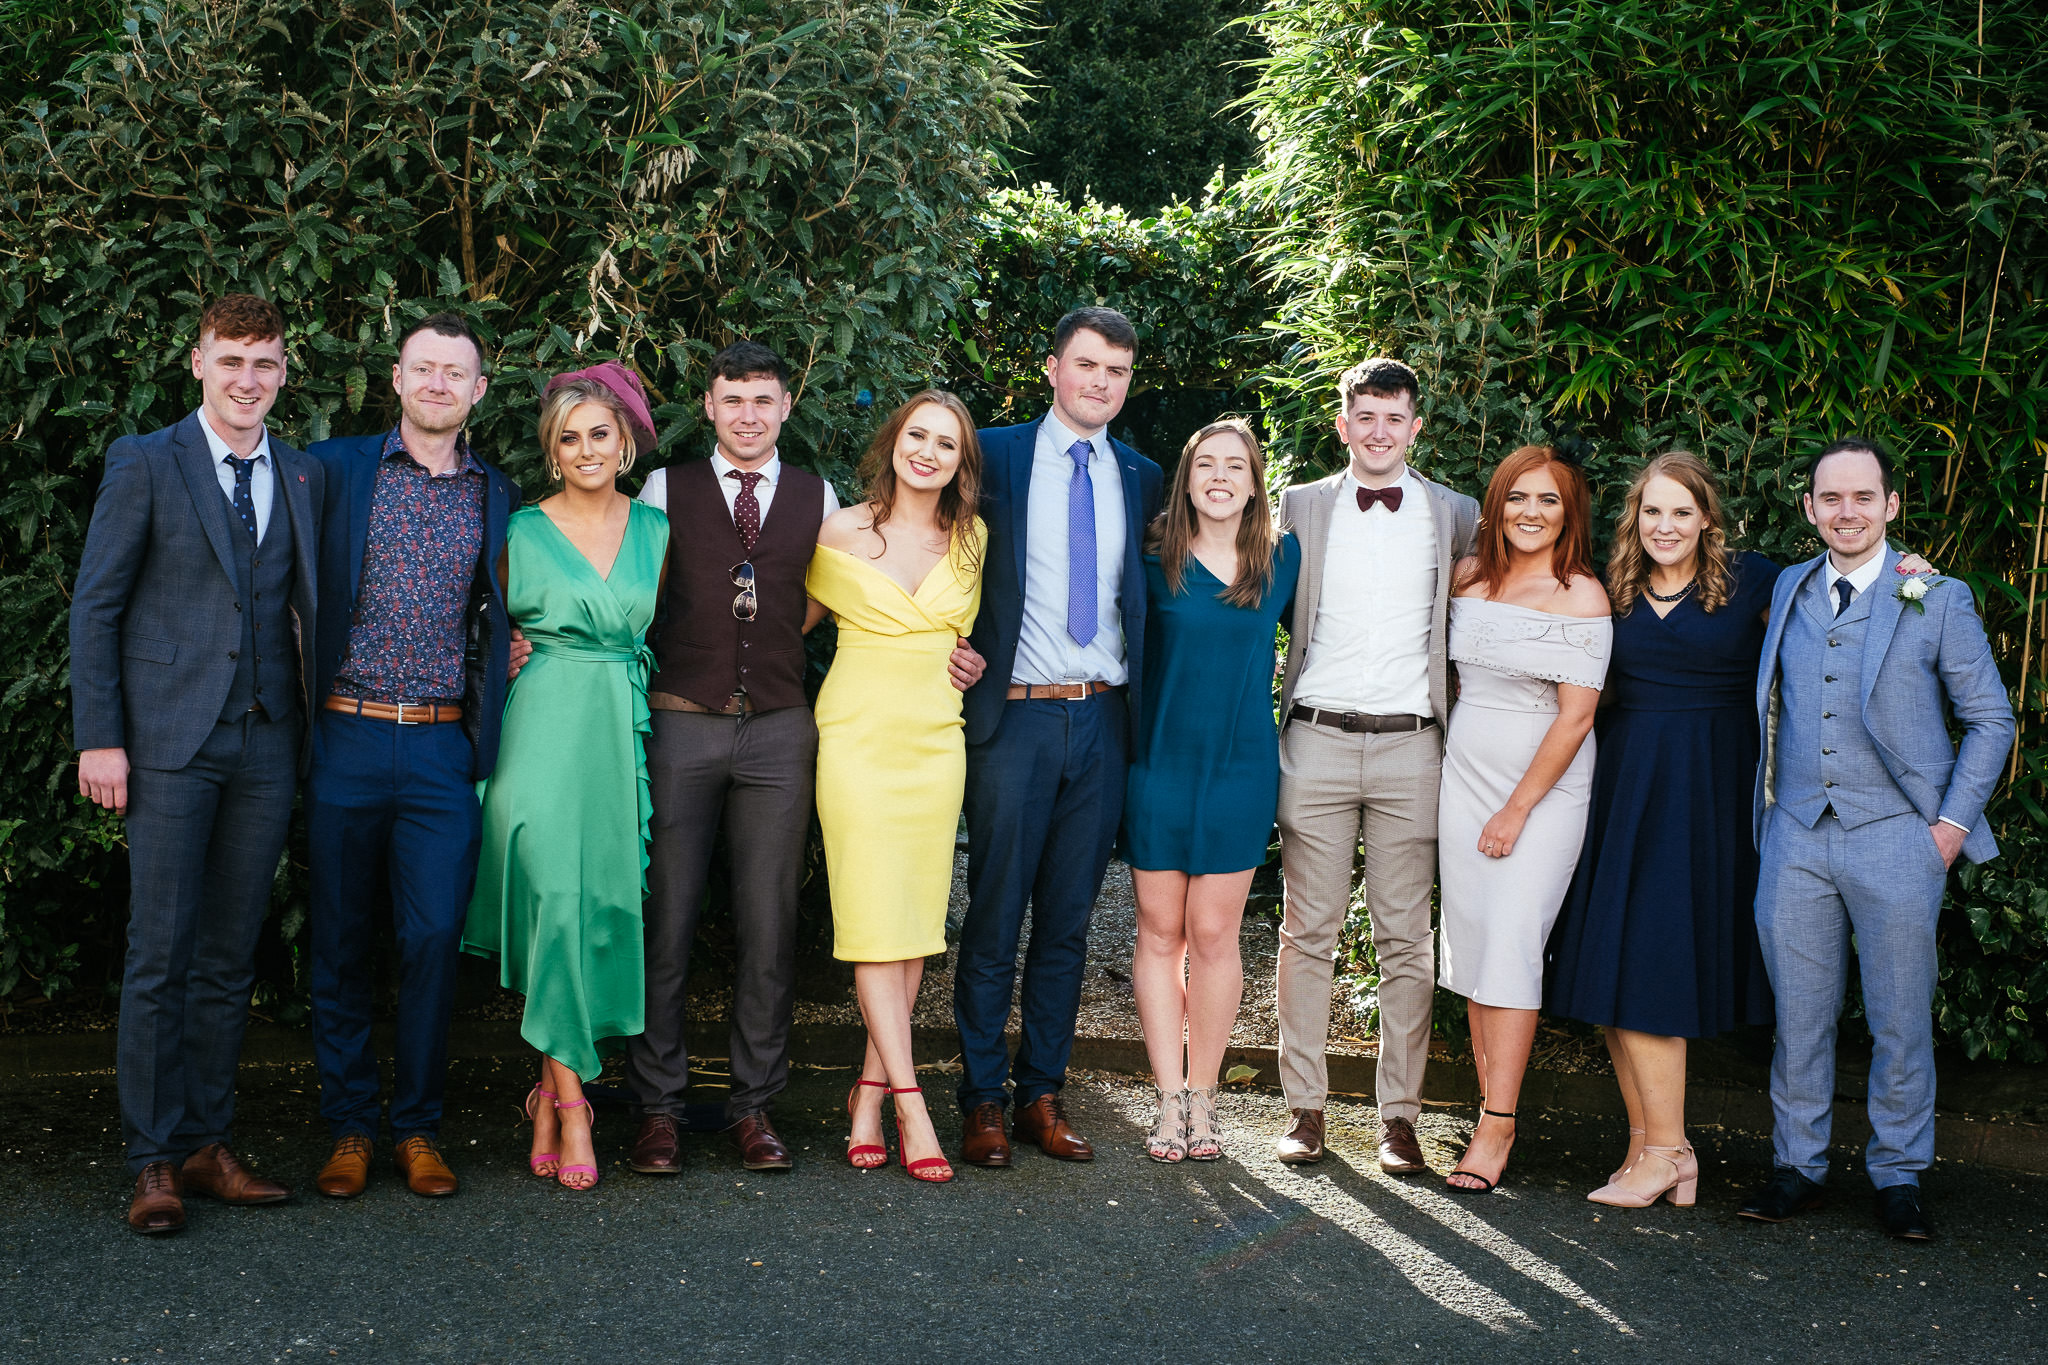 wedding guests posing for a photo at the Portmarnock Hotel Dublin